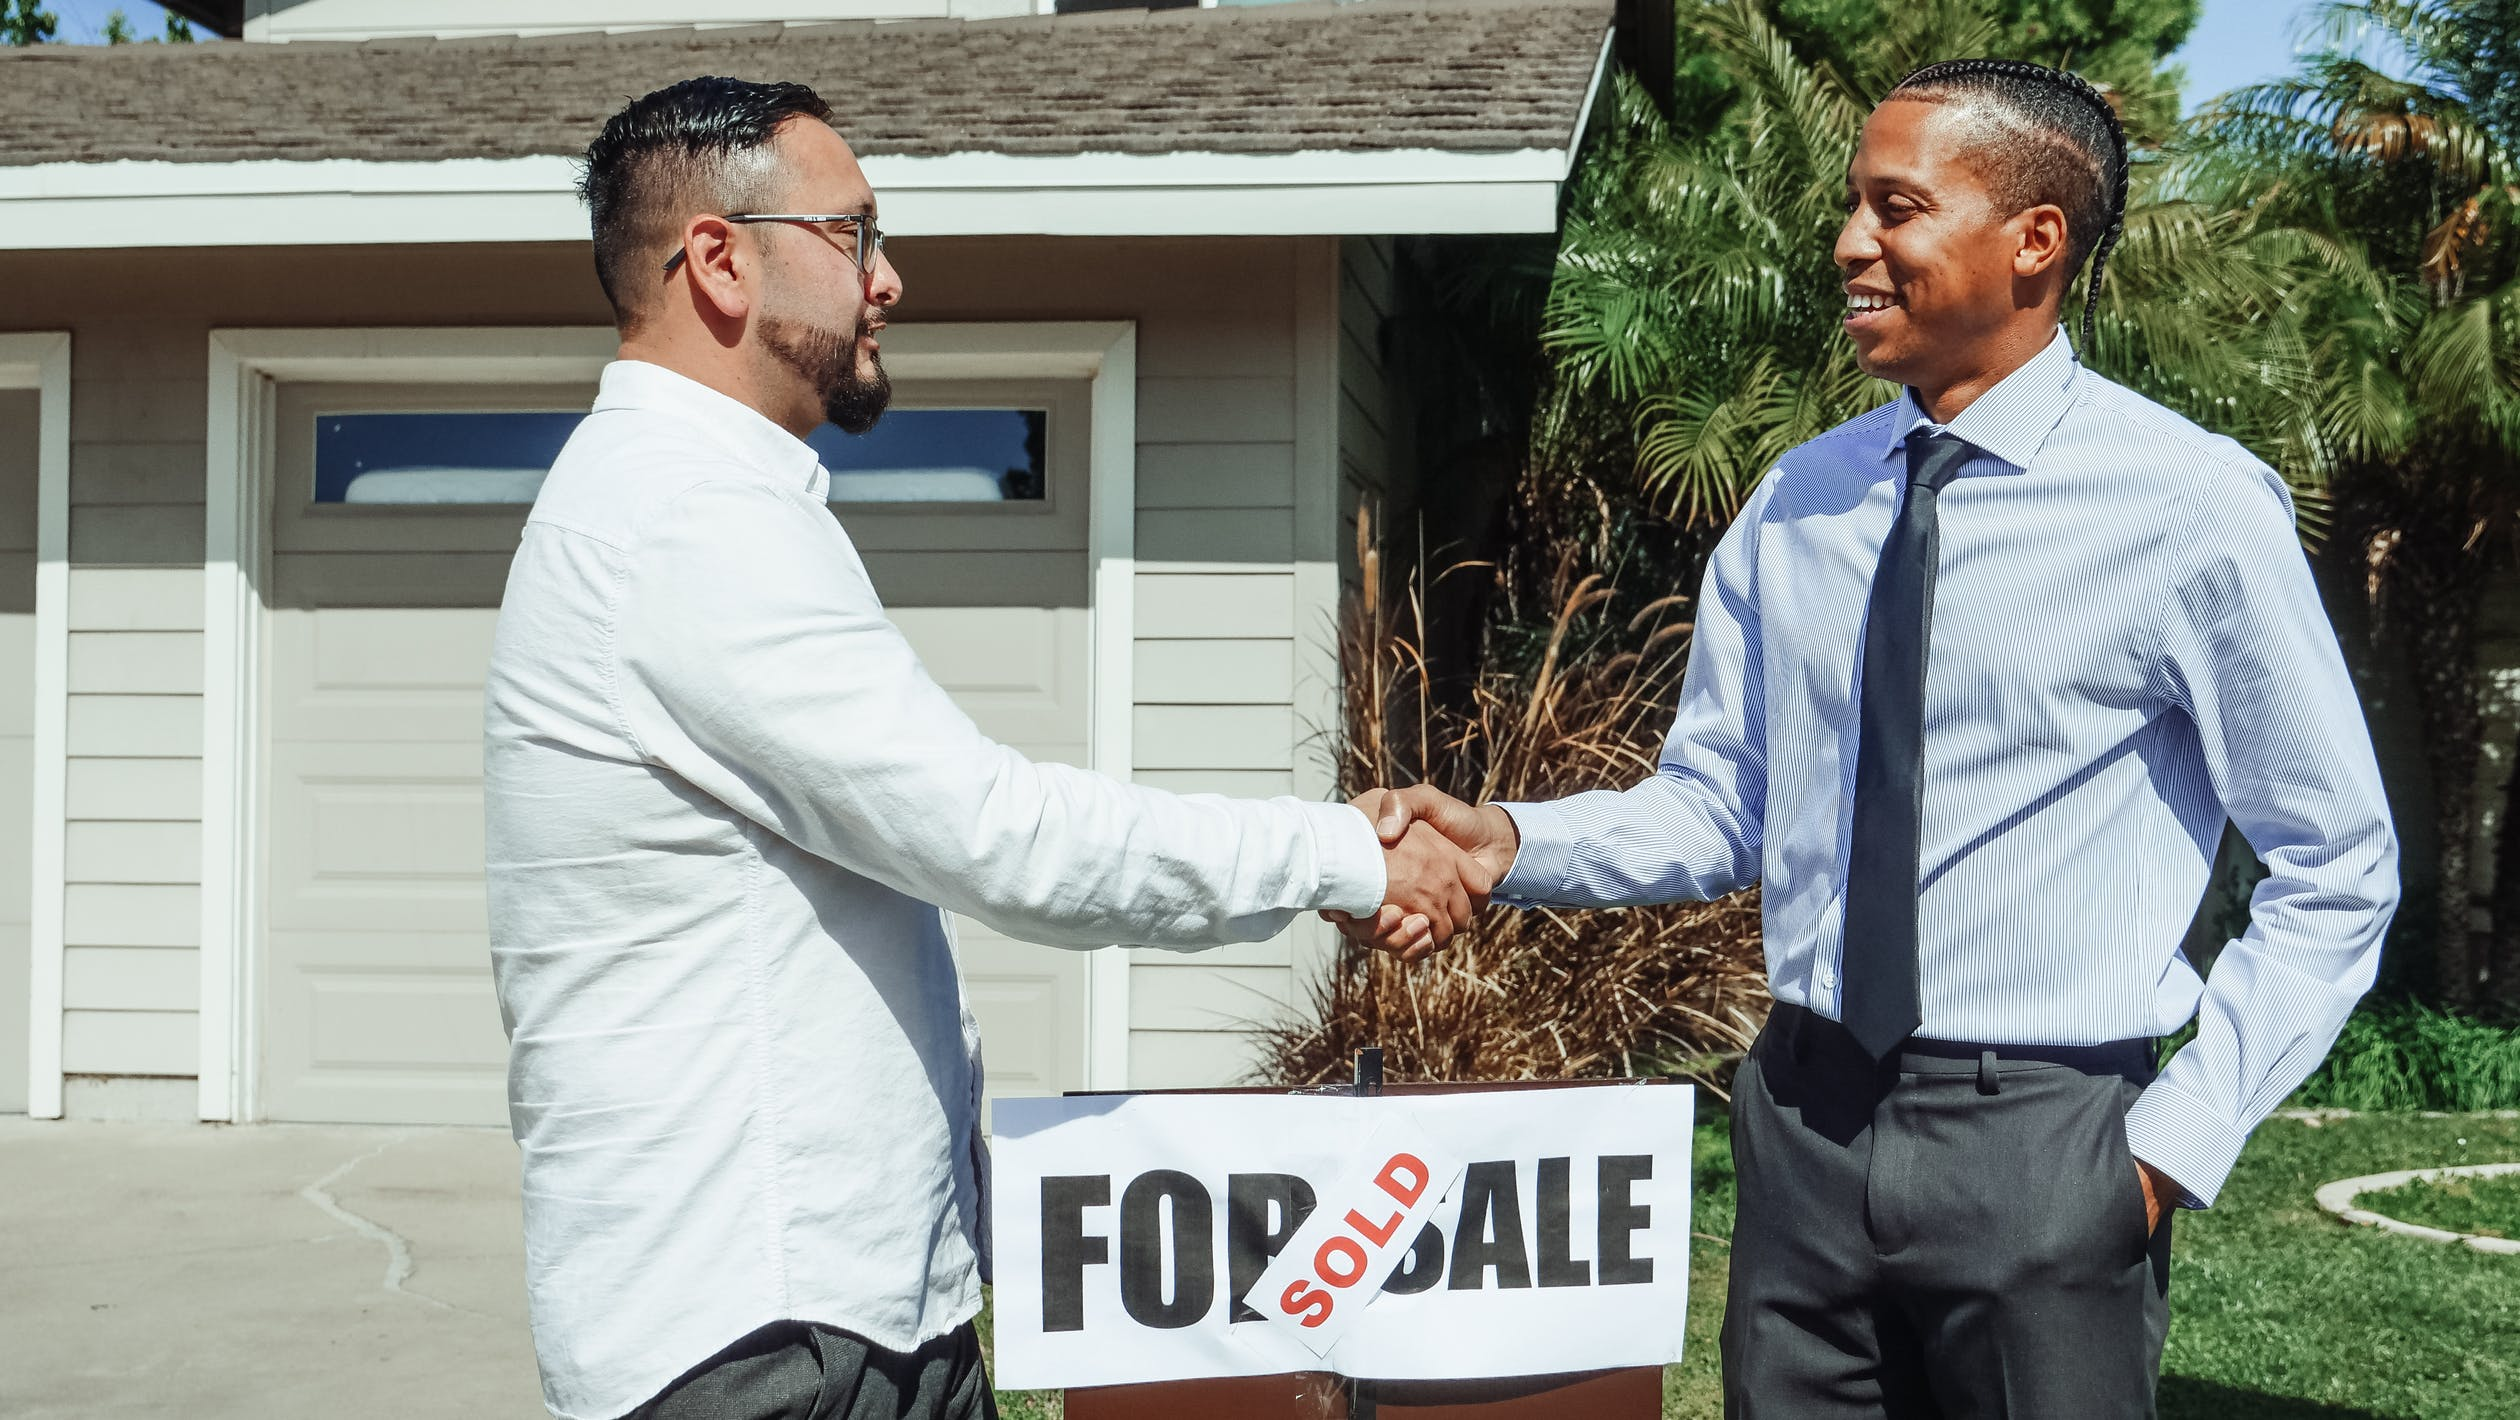 How to Find The Best Realtor In Your Area When House Hunting